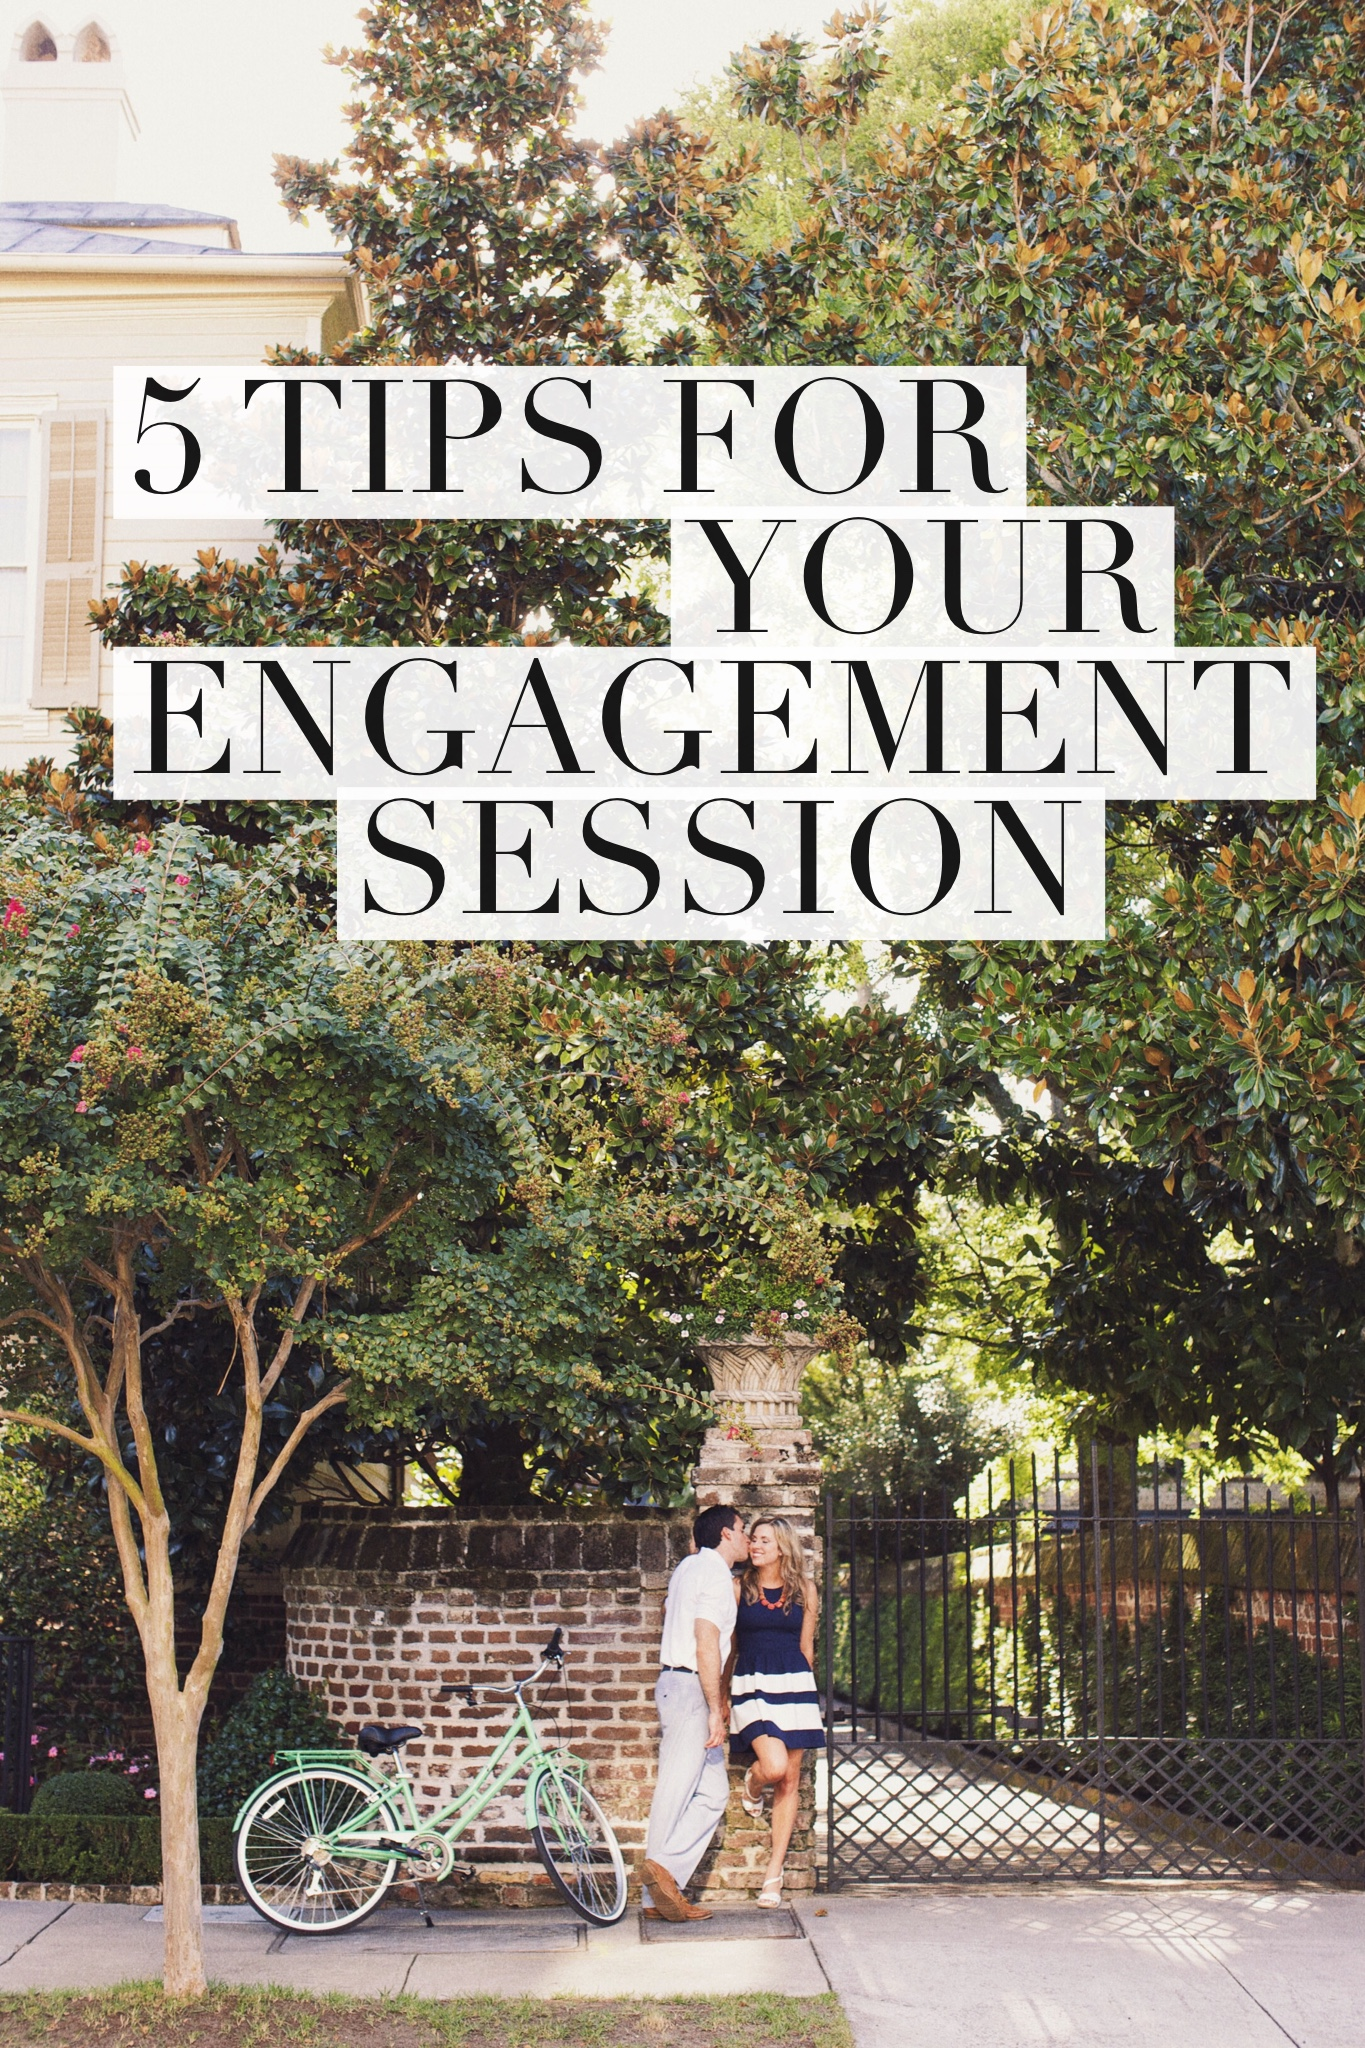 5 Tips for Your Engagement Session by Revival Photography